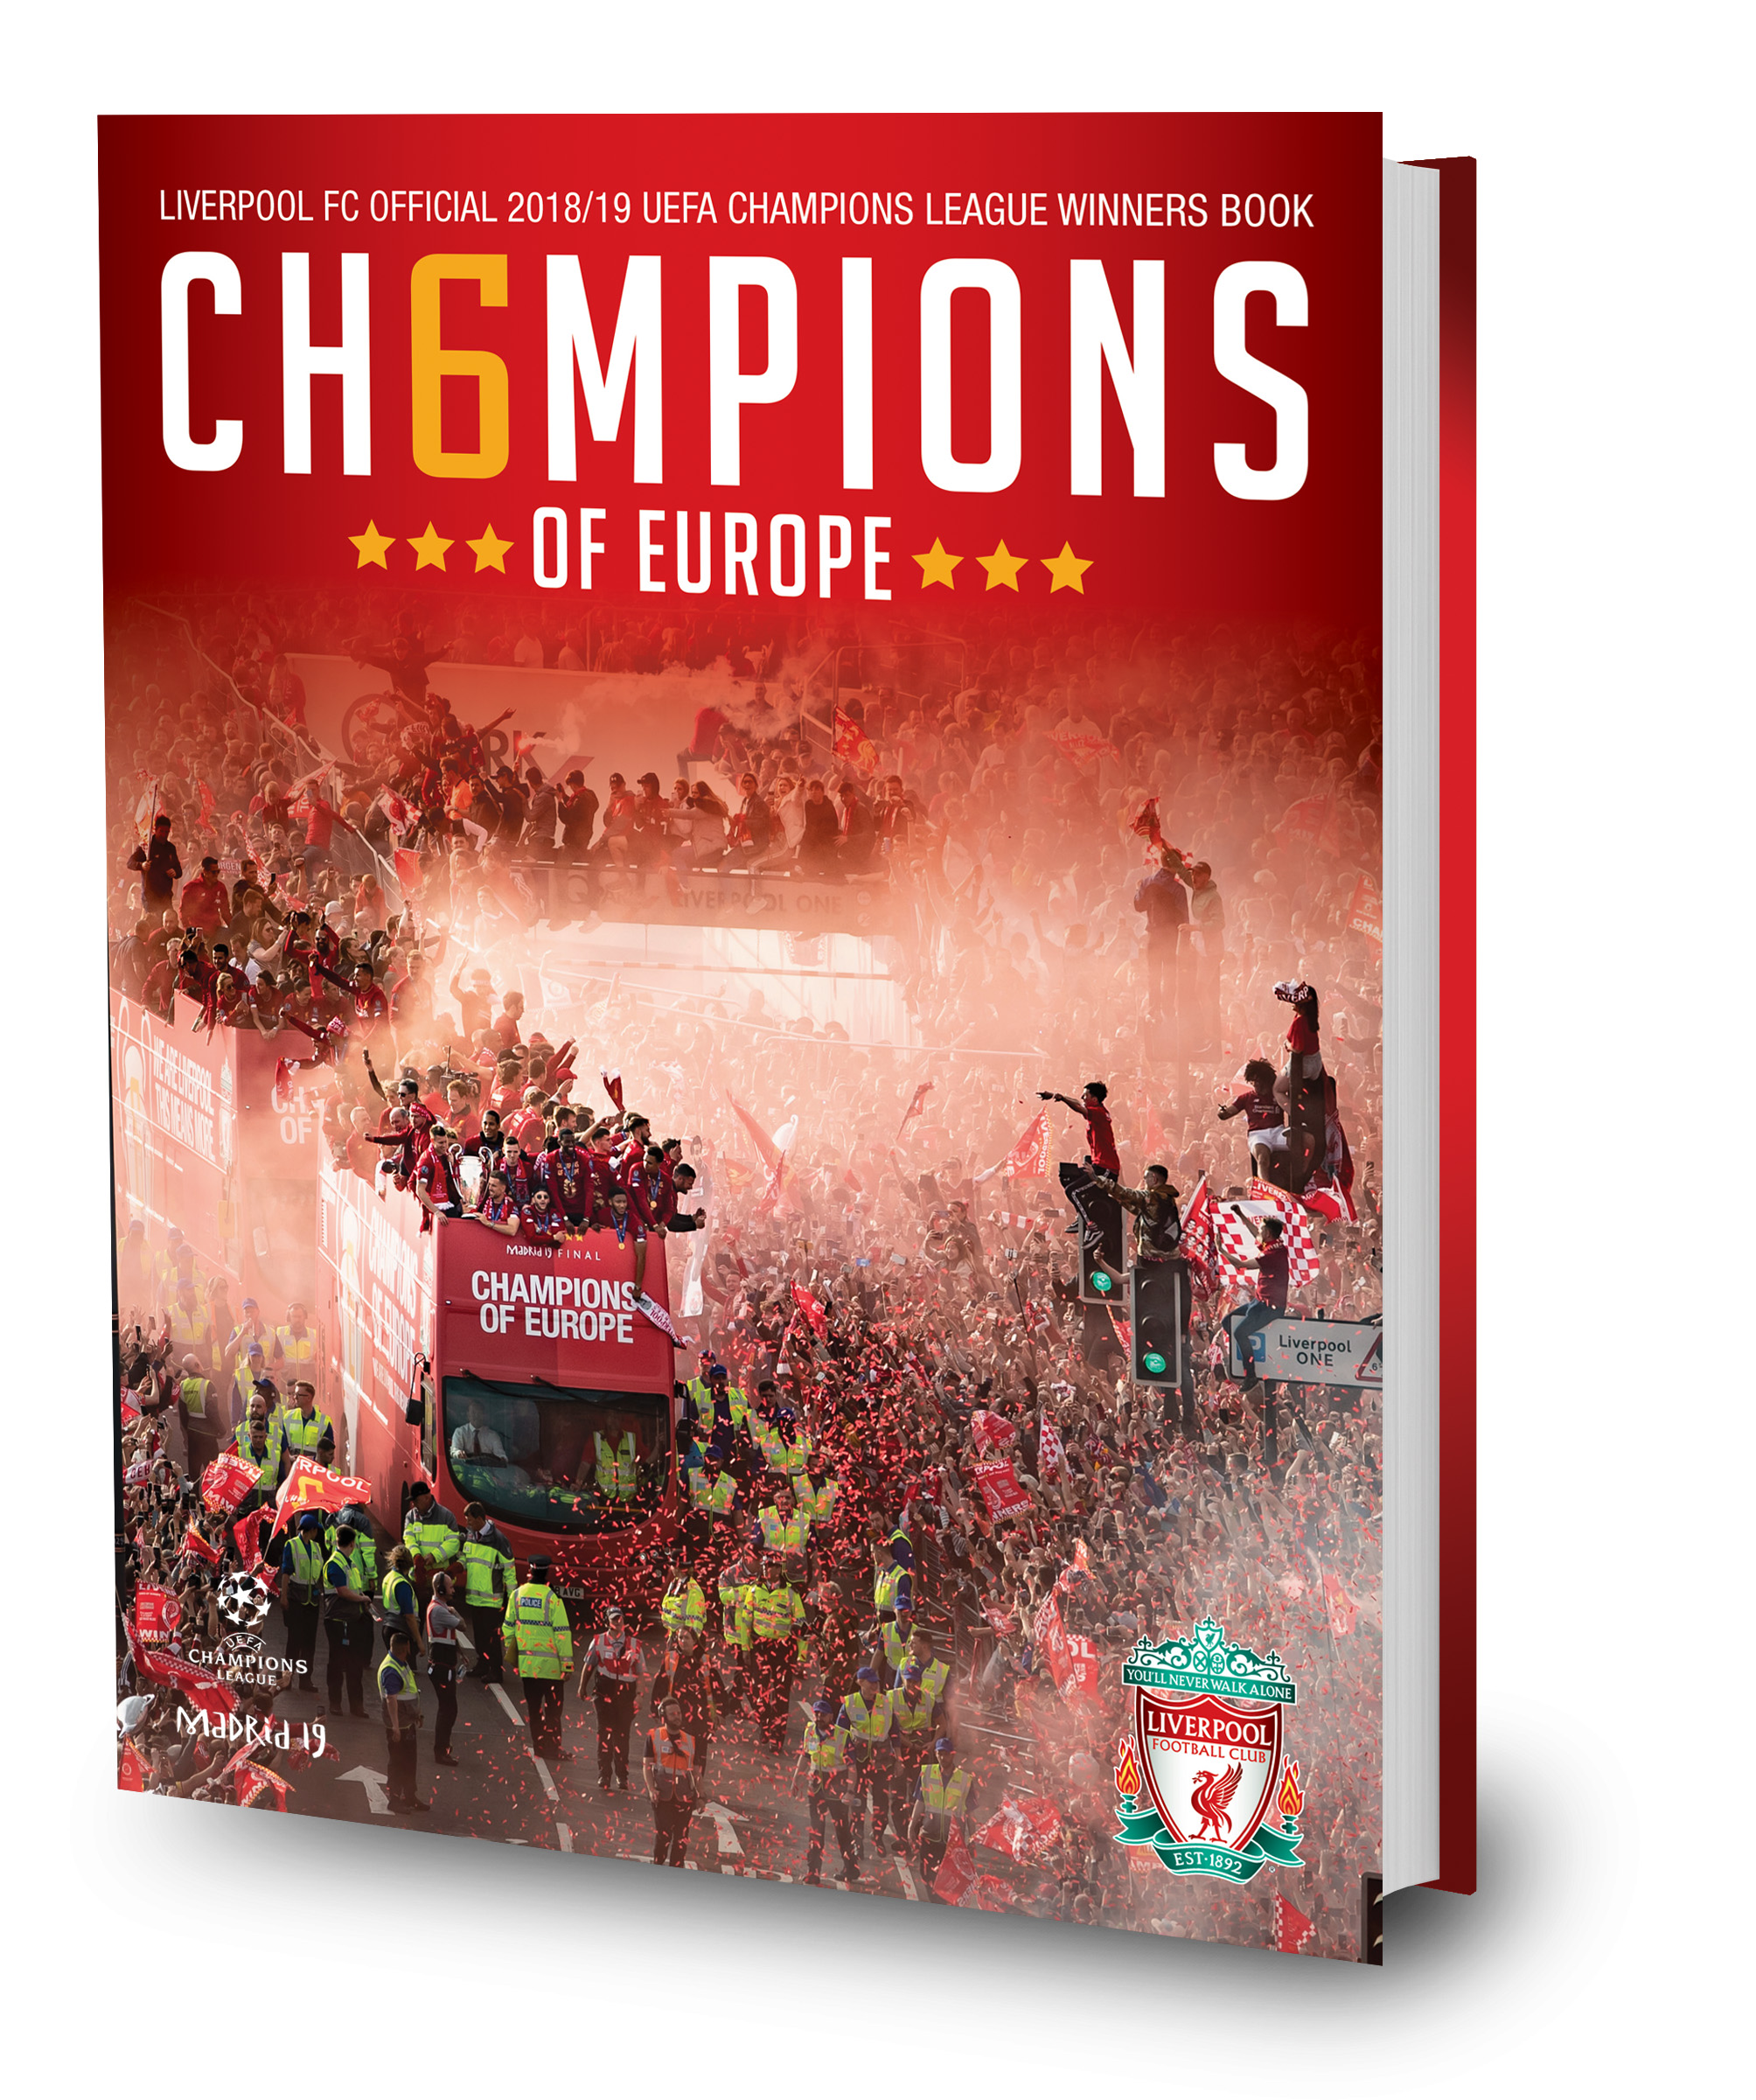 Official Ch6mpions Of Europe Souvenir Book Available To